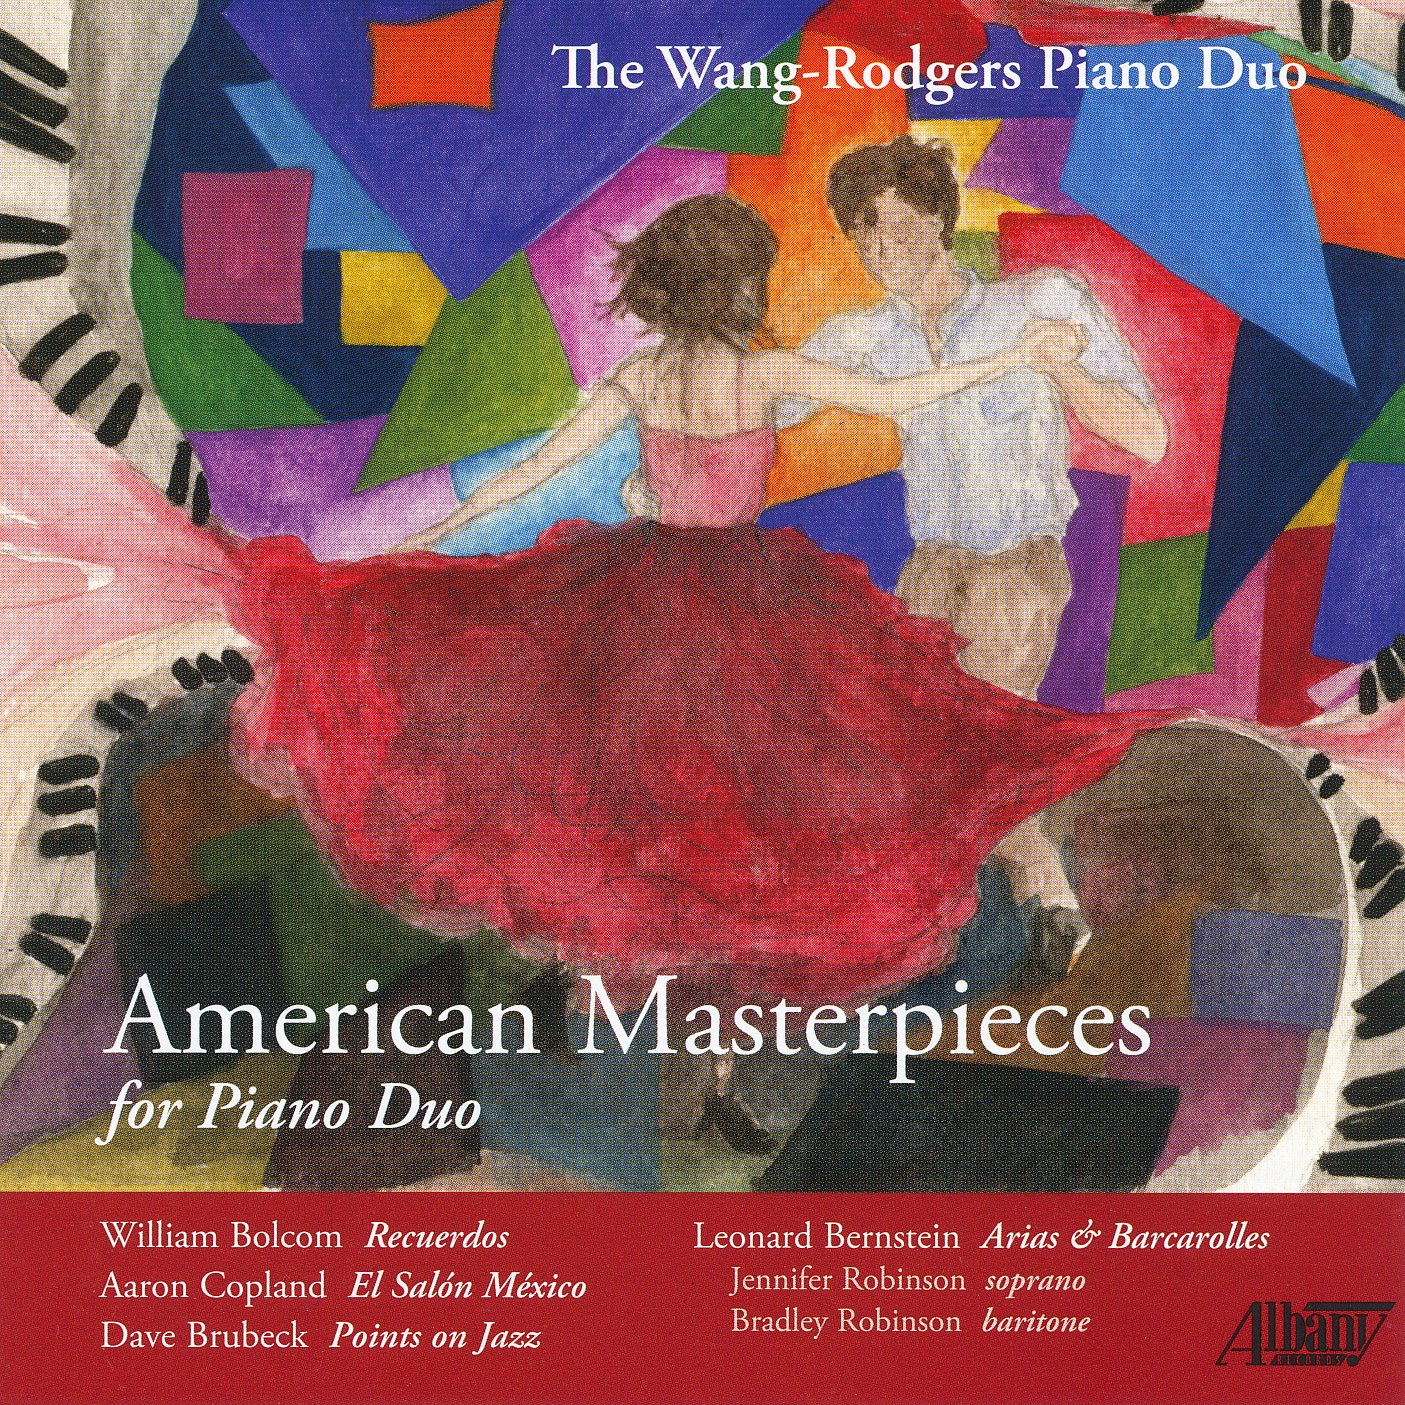 CD : Wang-Rodgers Piano Duo - American Masterpieces For Piano Duo (CD)